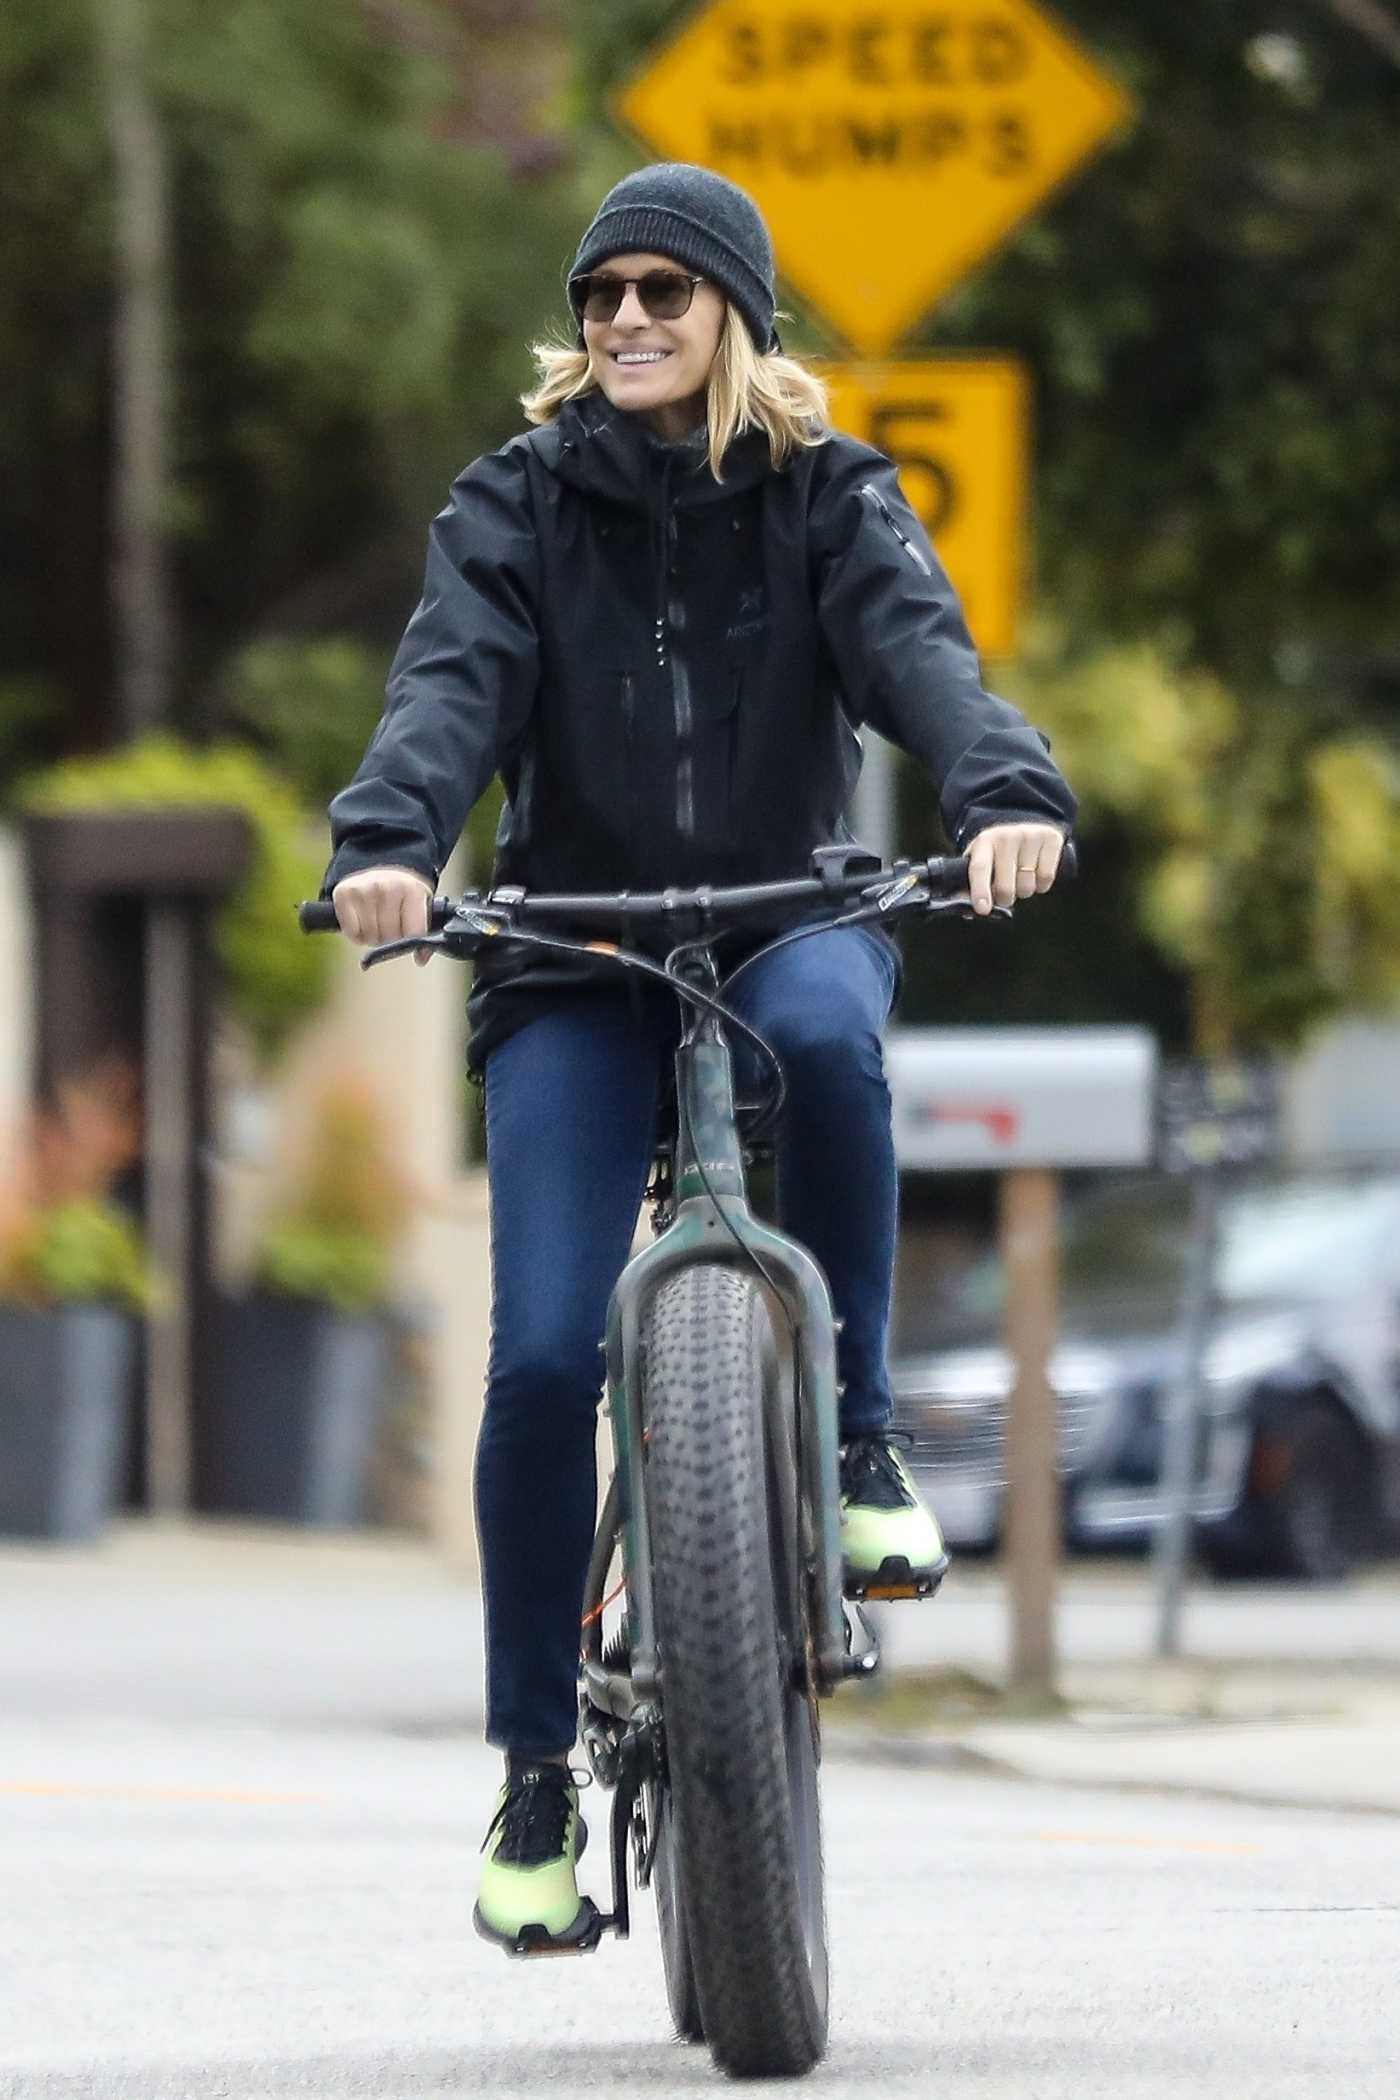 Robin Wright in a Black Jacket Does a Bike Ride Near Her Home in Pacific Palisades 04/17/2020